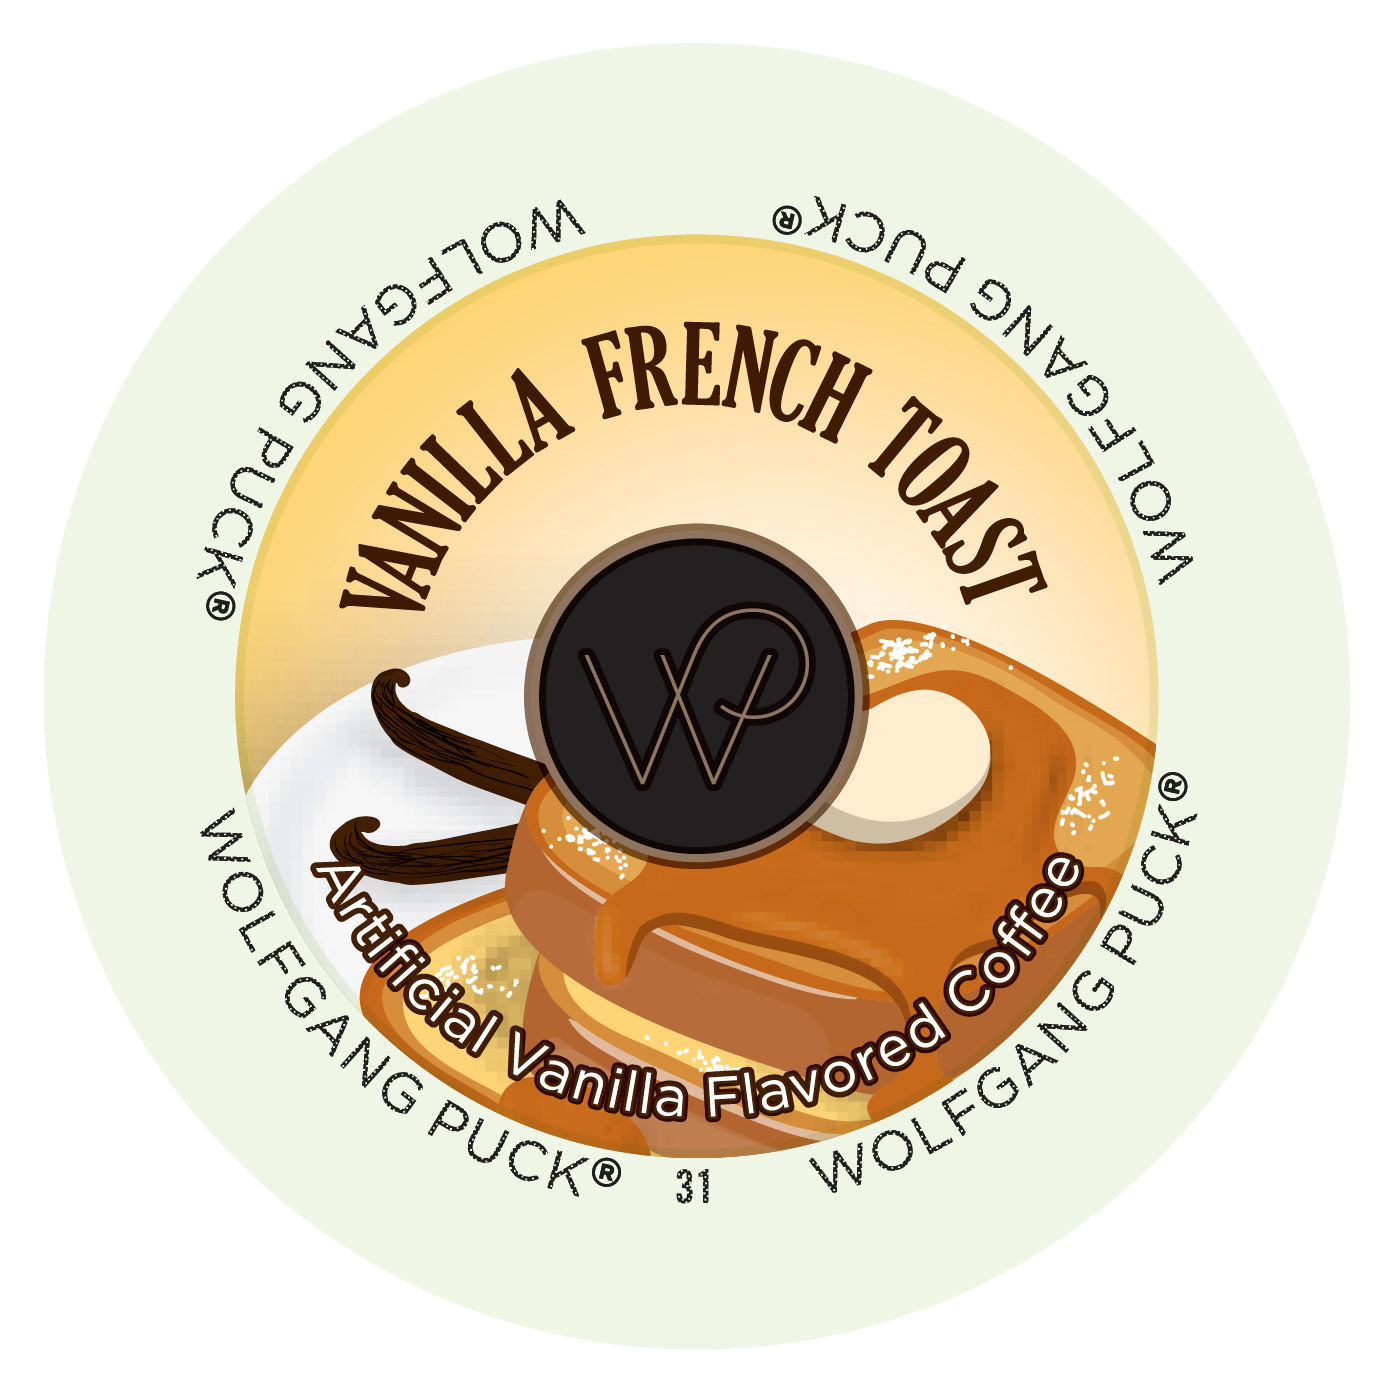 Wolfgang Puck Vanilla French Toast Coffee Single Serve Cups, 96 count